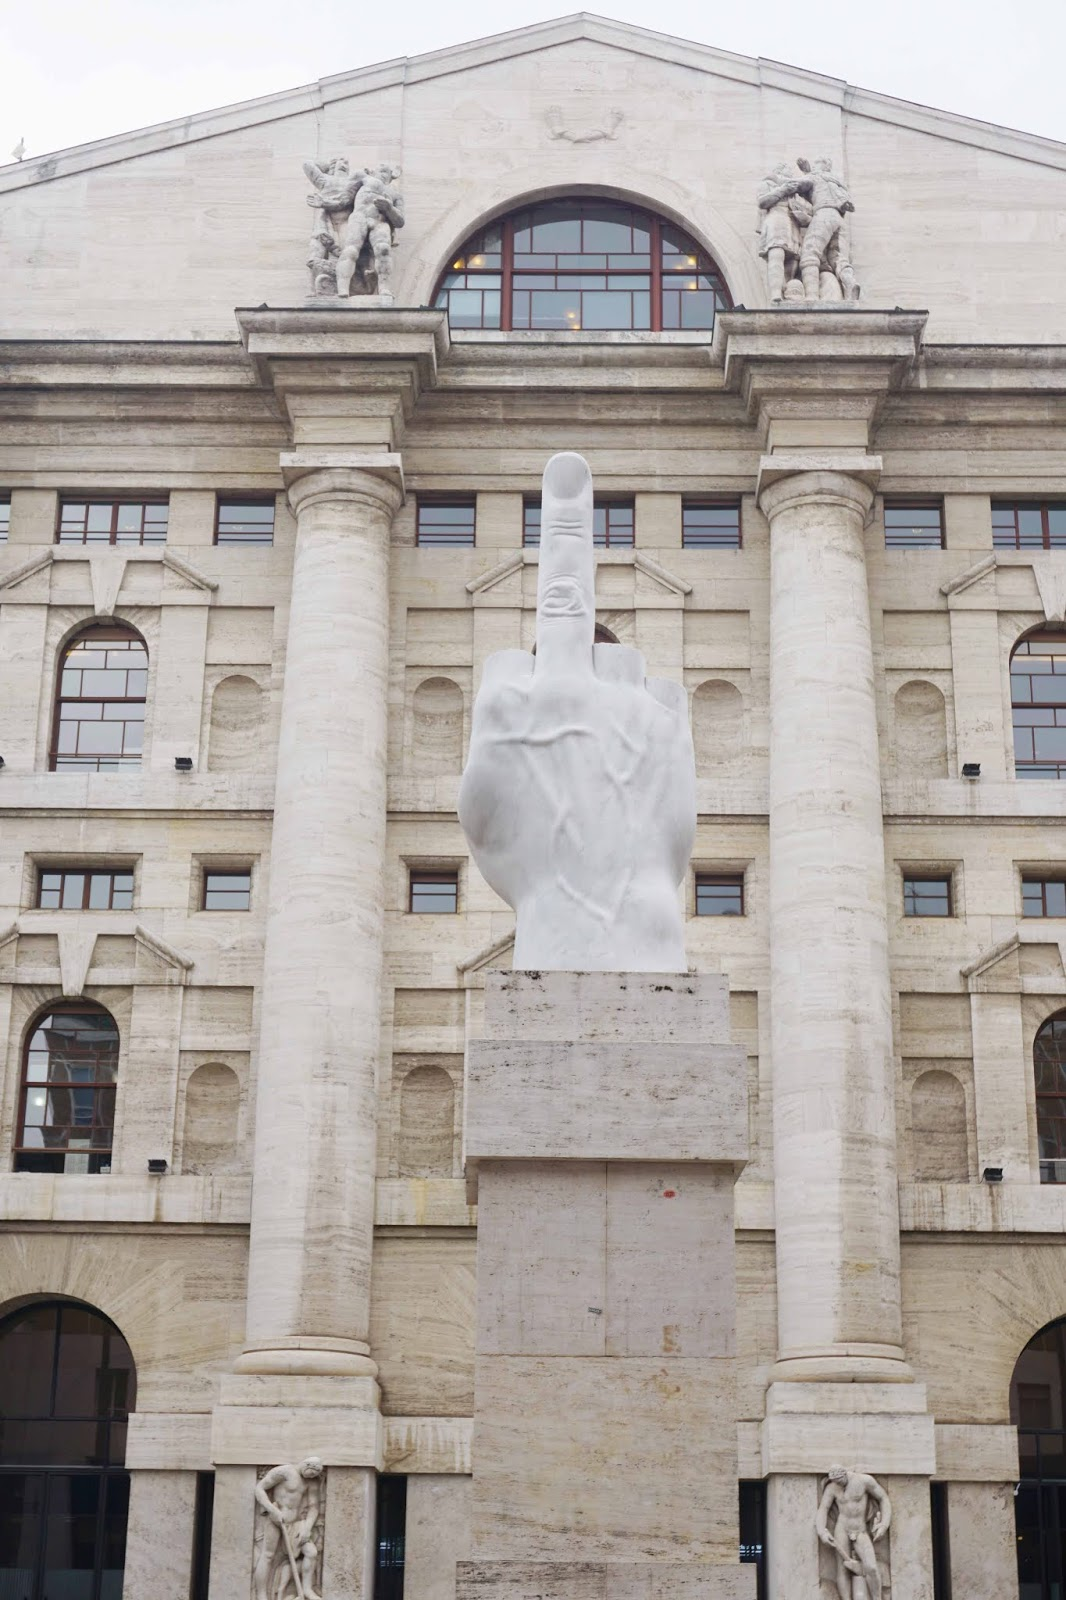 L.O.V.E by Maurizio Cattelan (Middle Finger Sculpture)